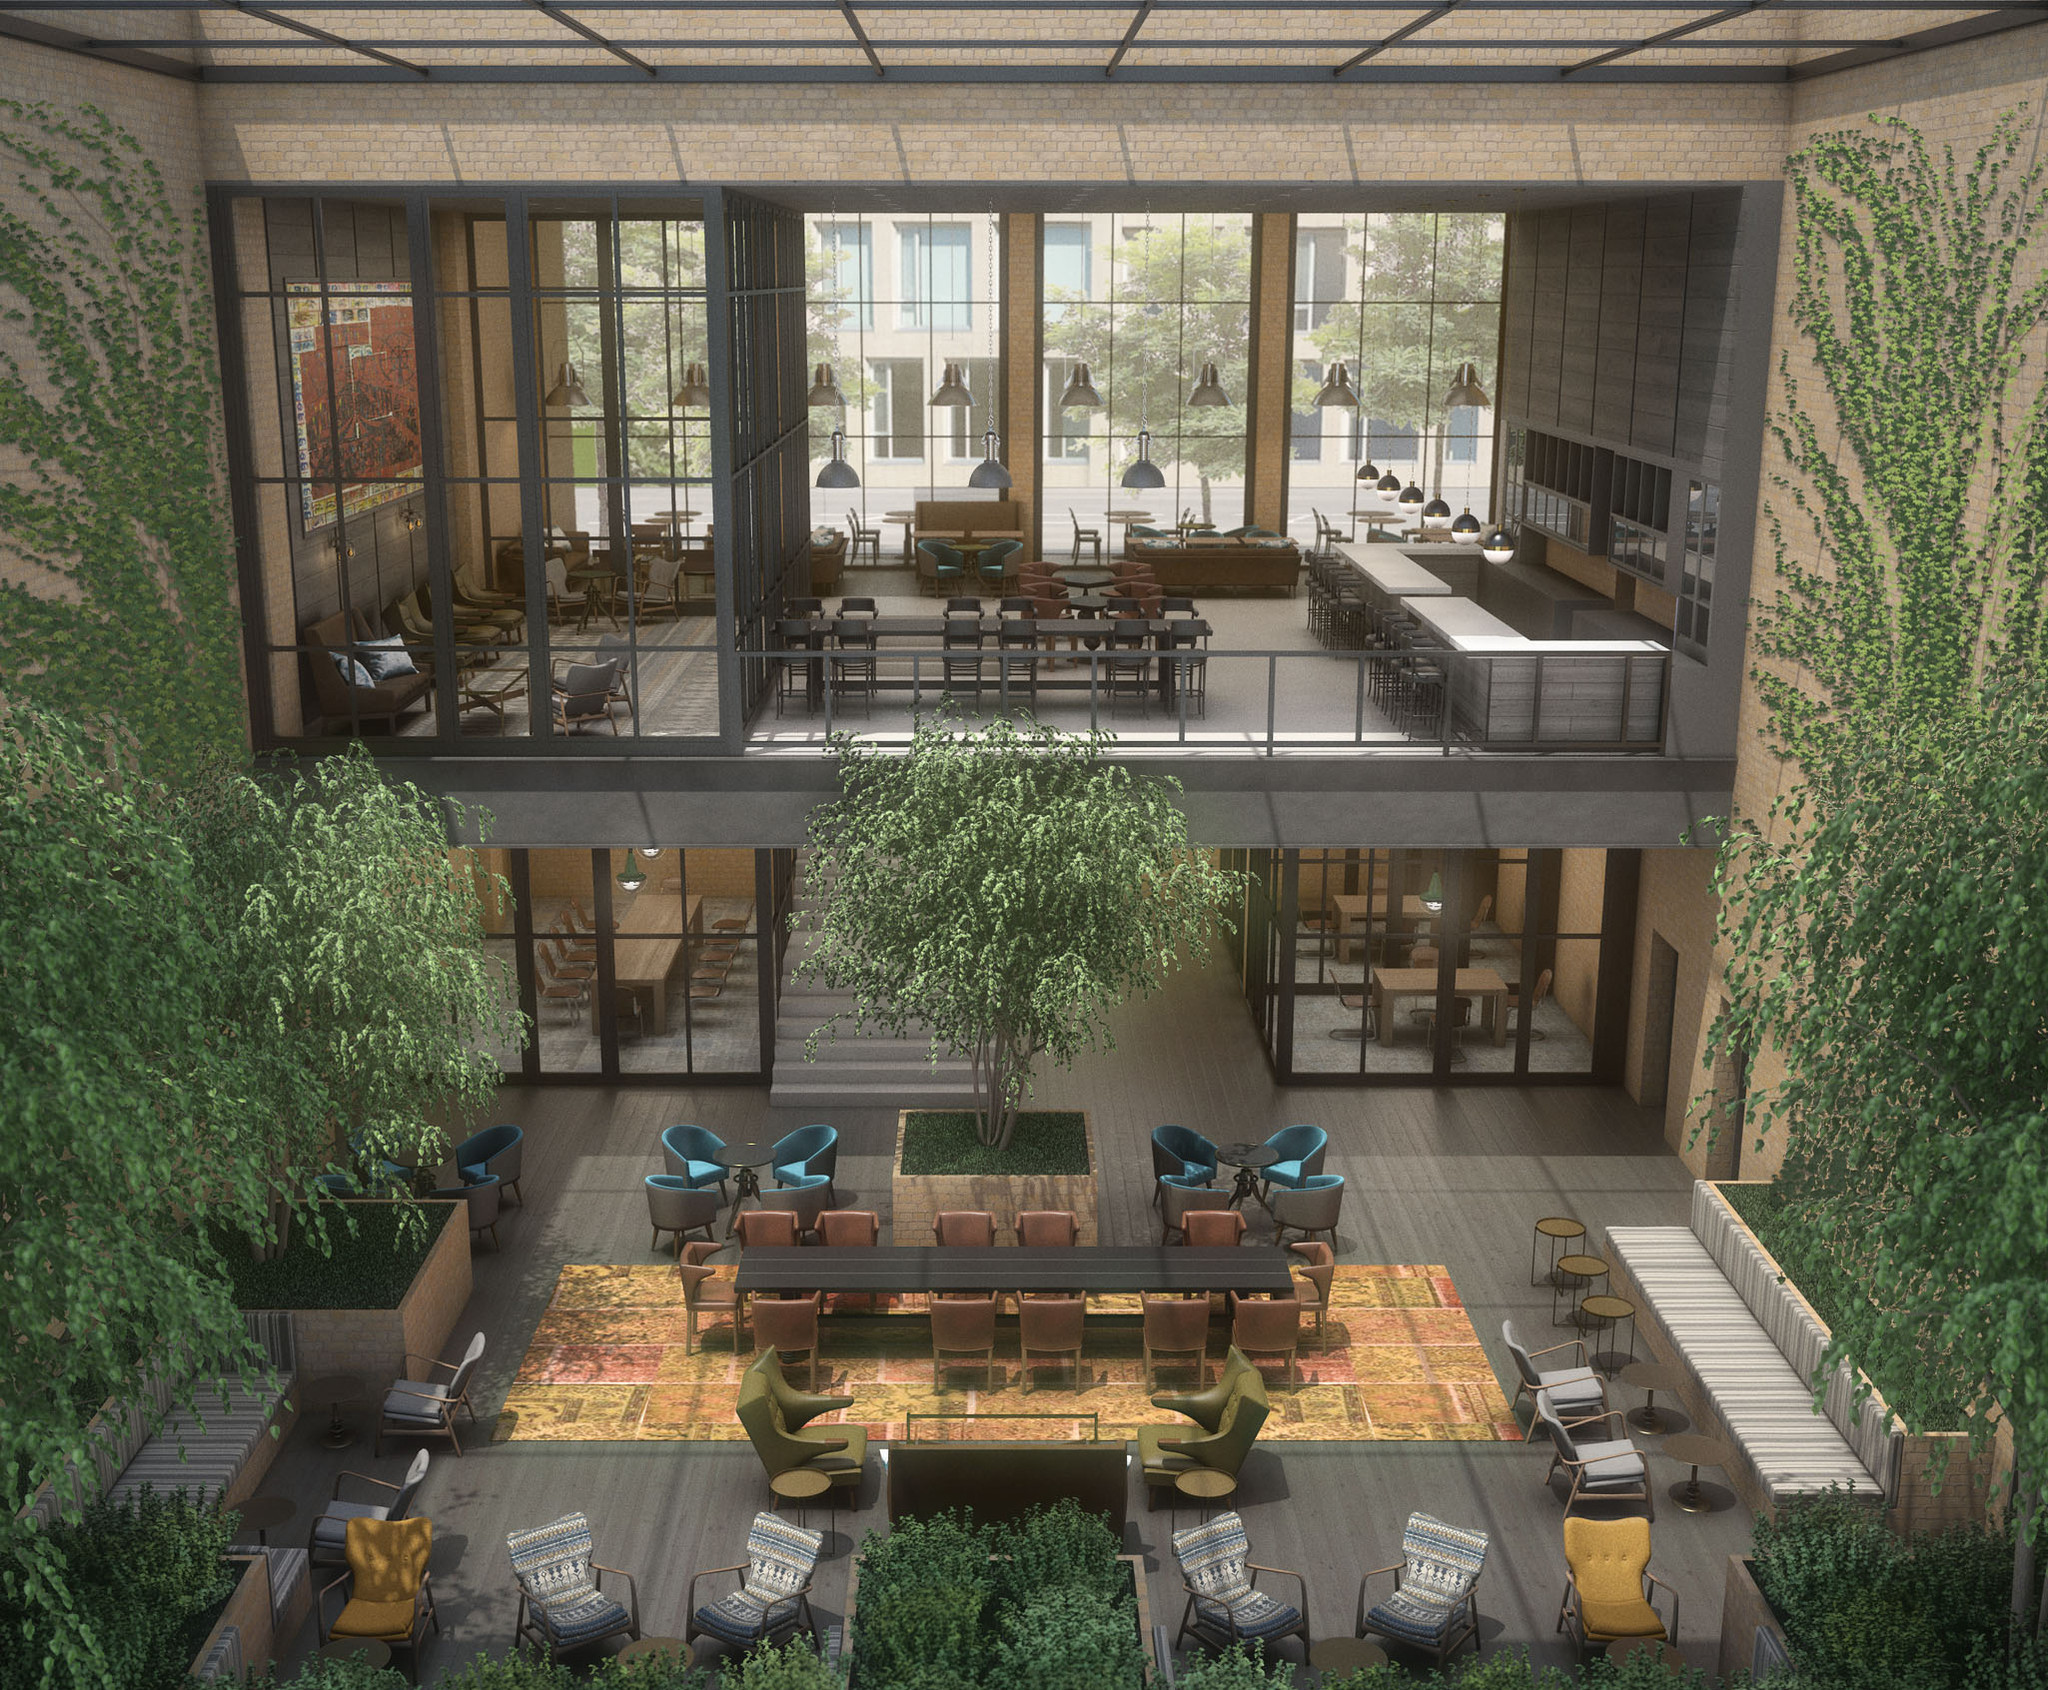 Hilton introduces new boutique brand canopy plans 11 for Design boutique hotel zagreb